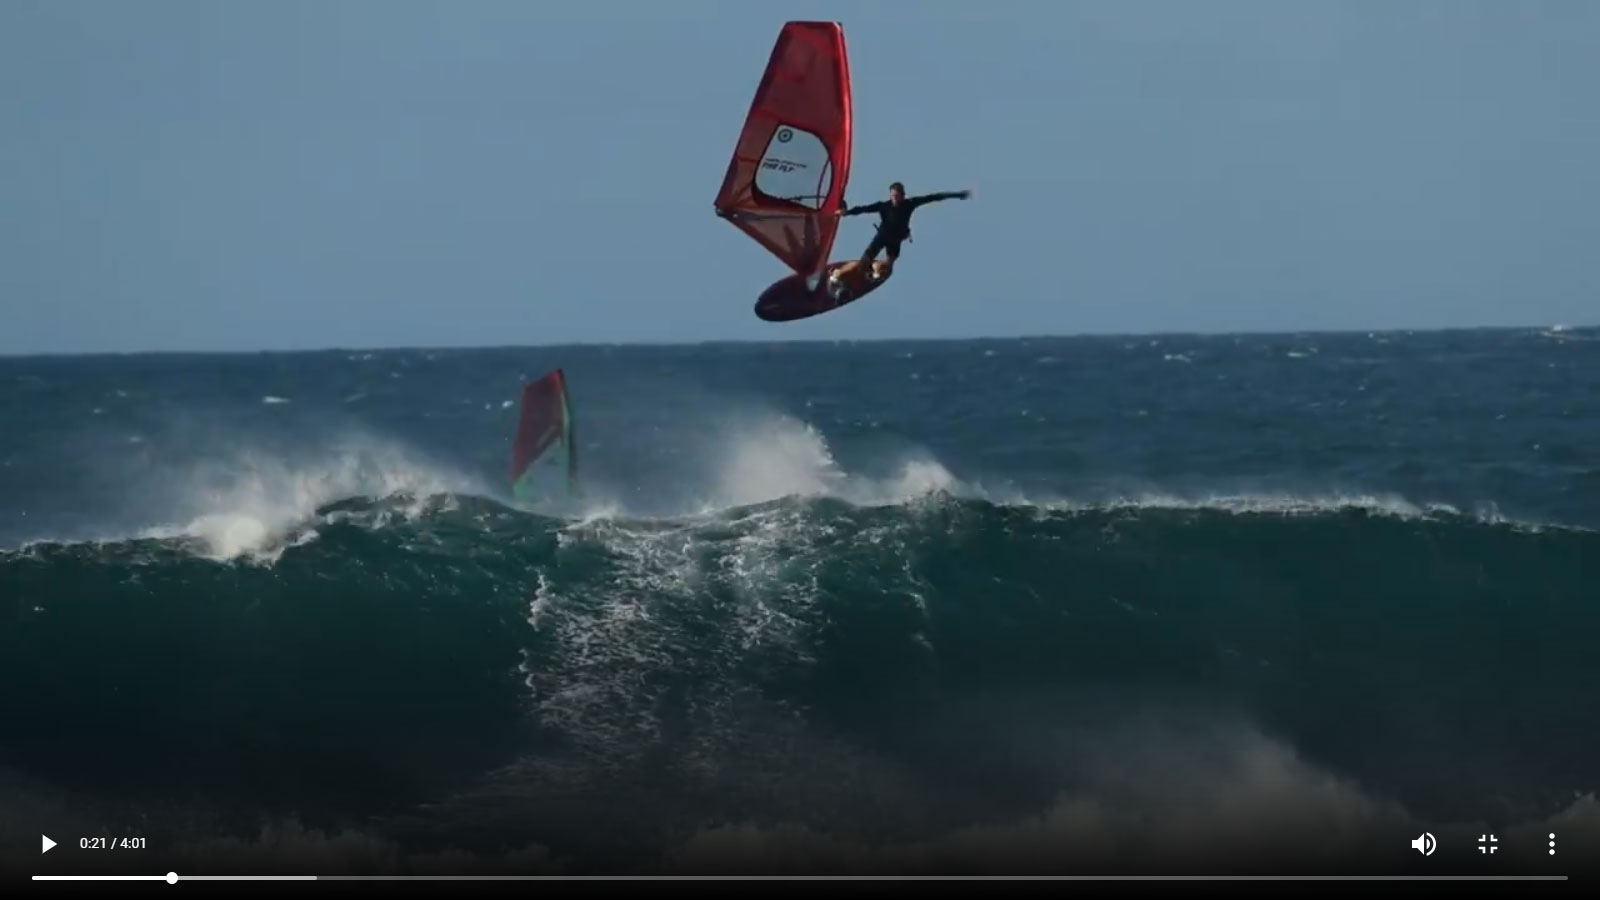 Antoine_Martin_windsurf_wave_dying_to_live.jpg